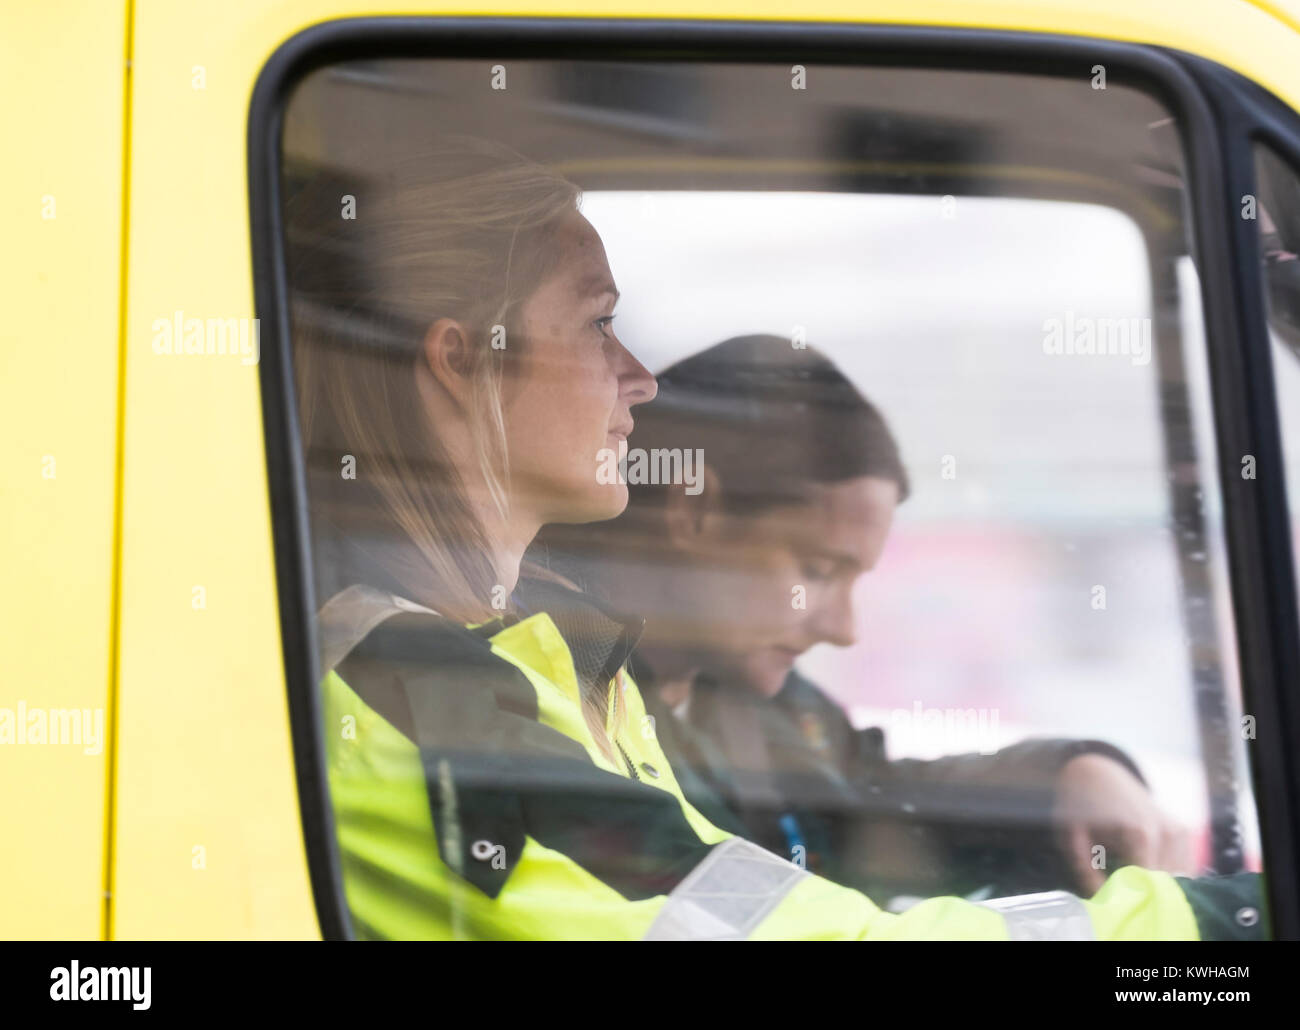 Female paramedics and NHS ambulance driver in England, UK. - Stock Image